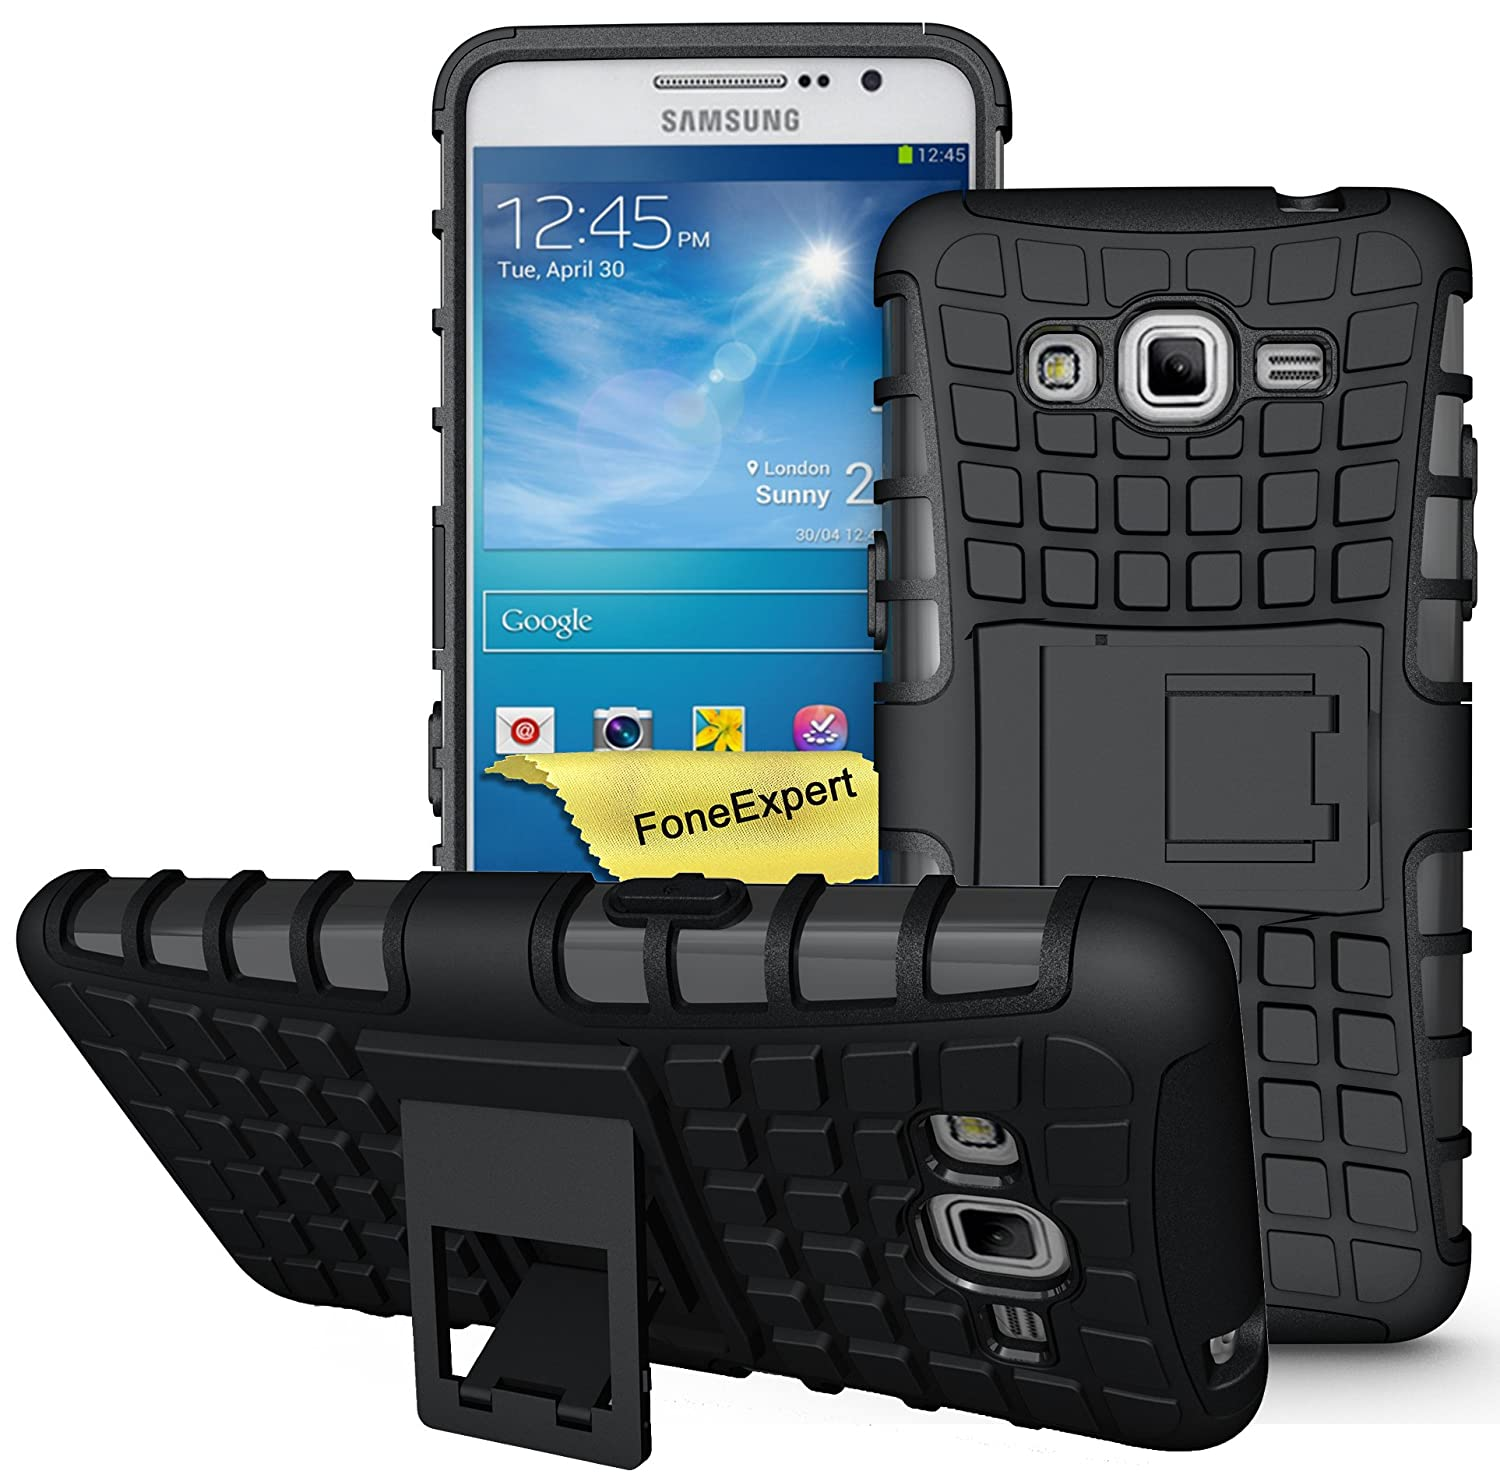 confirmed launch joining launching s mobilesyrup that for rogers samsung on june durable has feature phone galaxy rug in it bell after also rugged and the will xcover freedom reported both at new